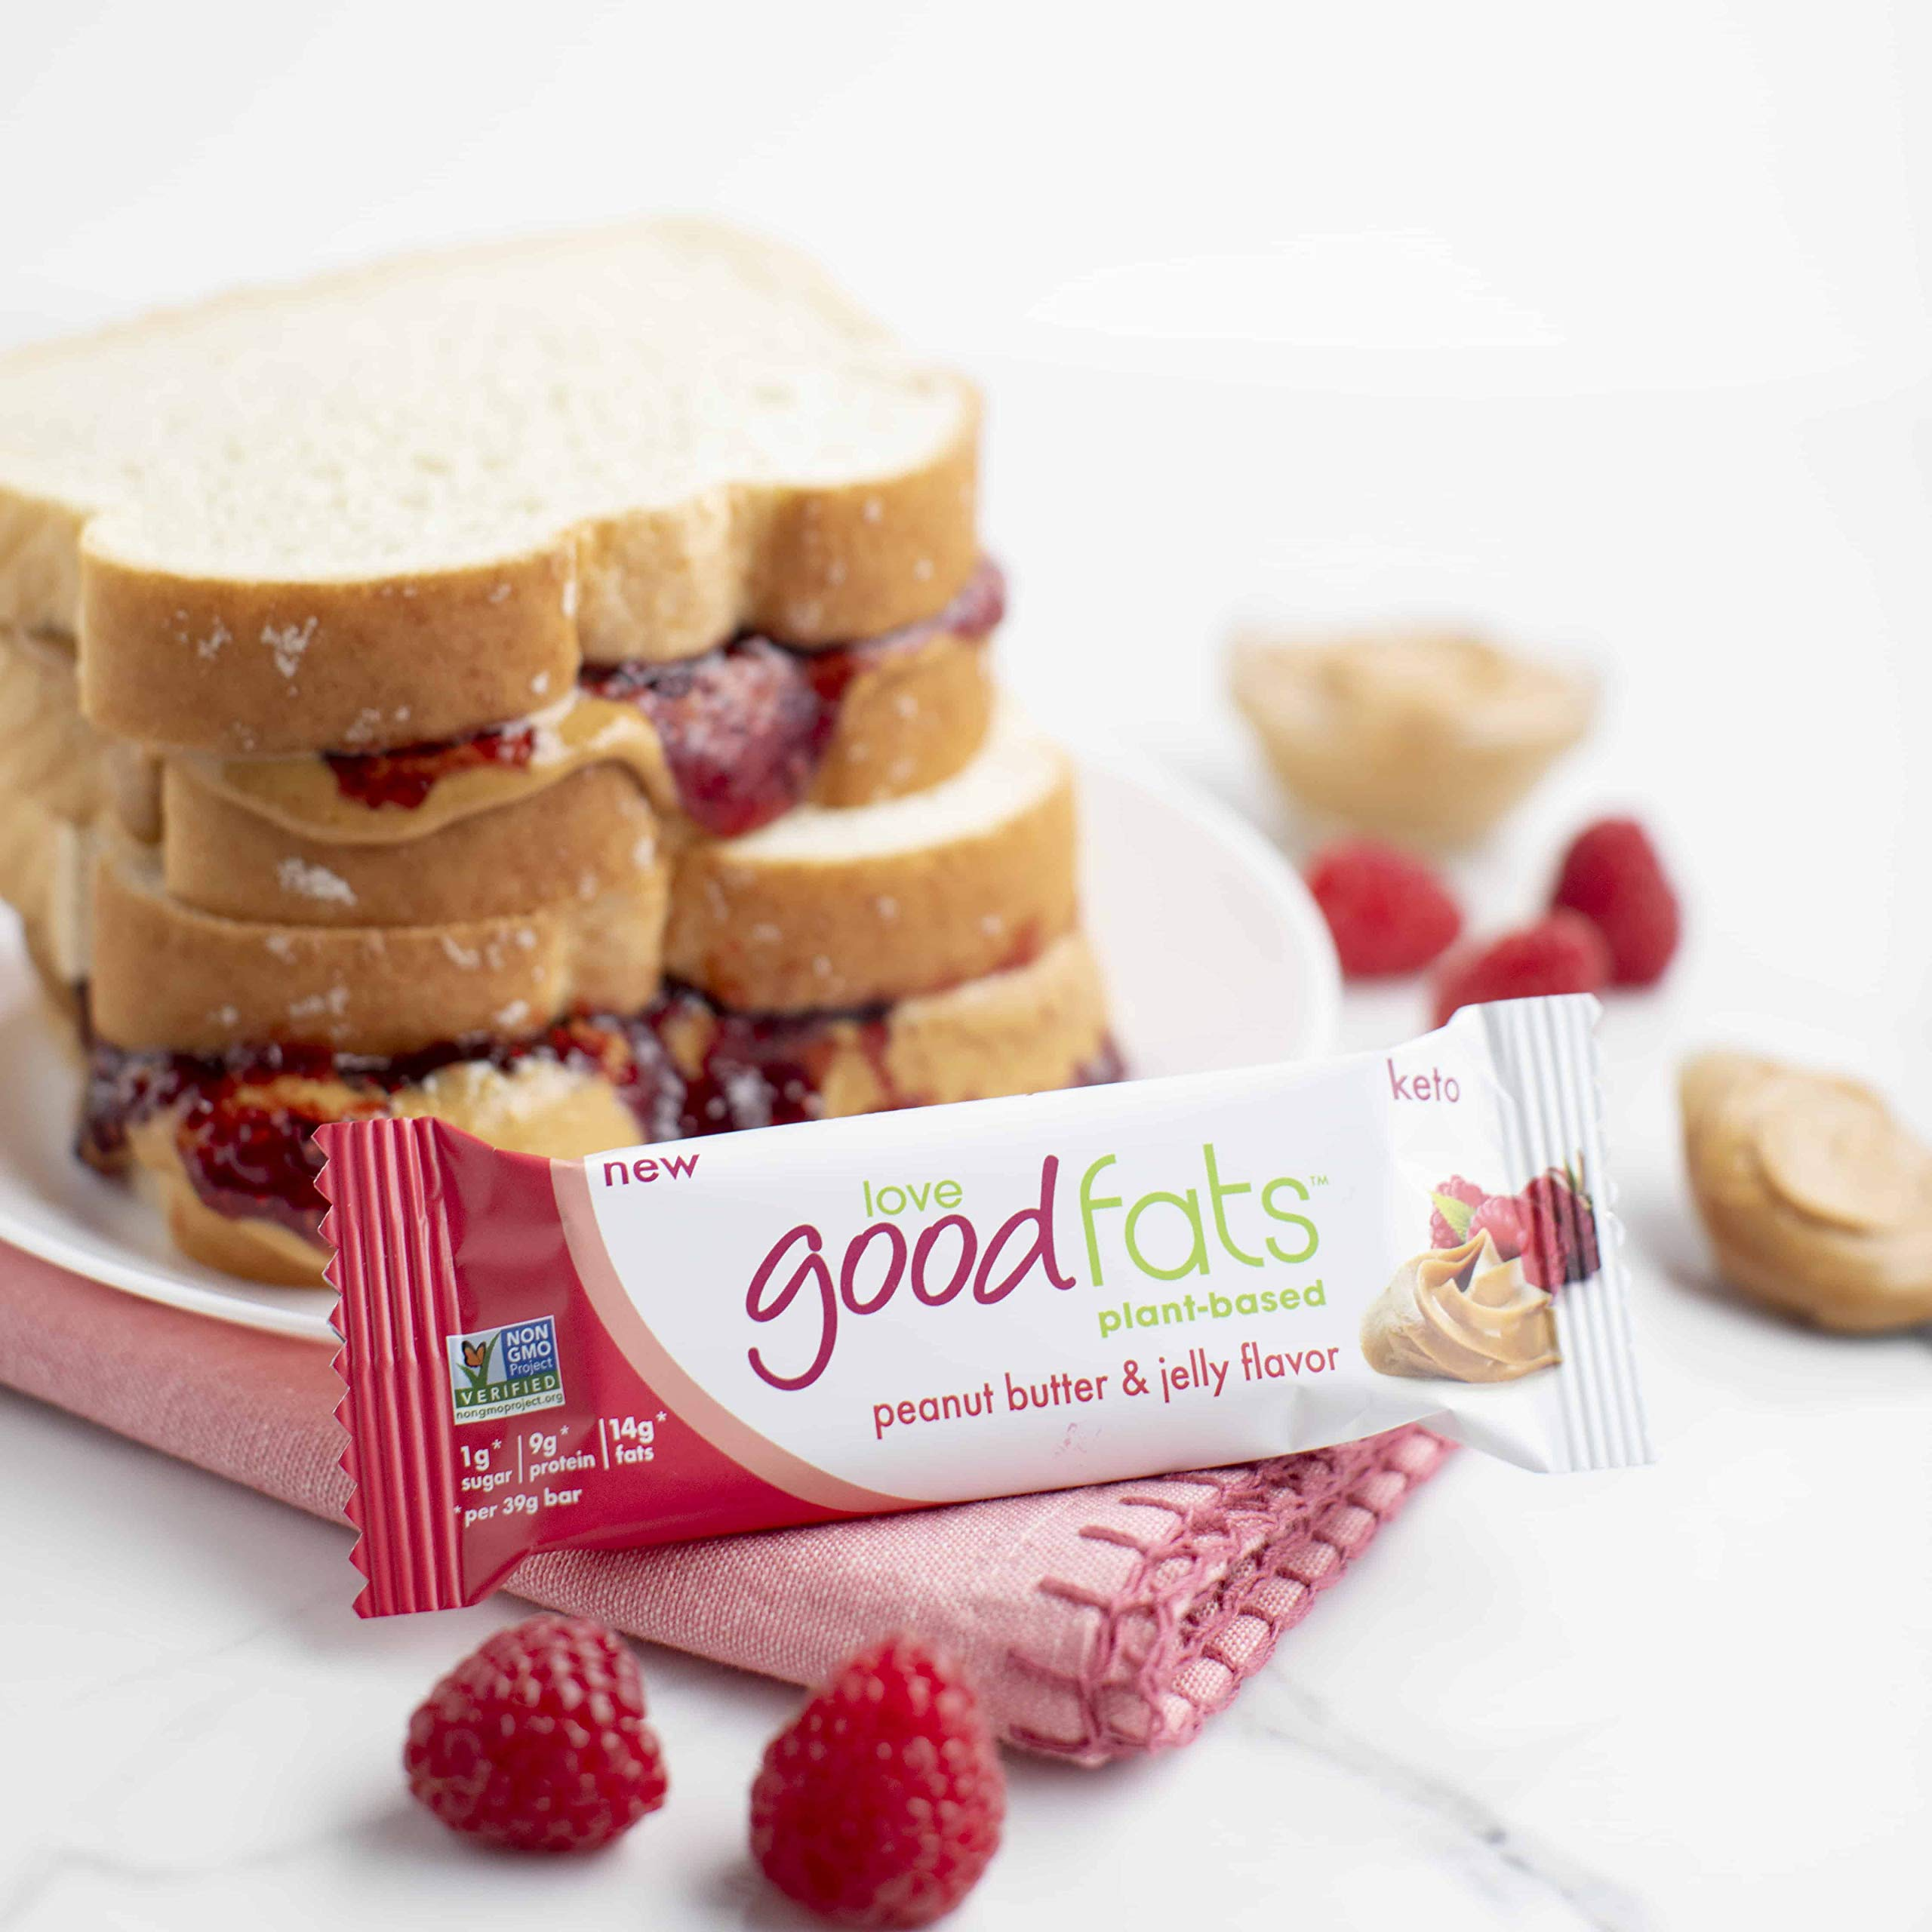 Love Food Fats - Plant Based Bars - Peanut Butter & Jelly - Vegan, Keto Friendly, Low Carb, Low Sugar, Gluten-Free, Non GMO - 1.38 Ounce (12 Pack) by love good fats (Image #5)